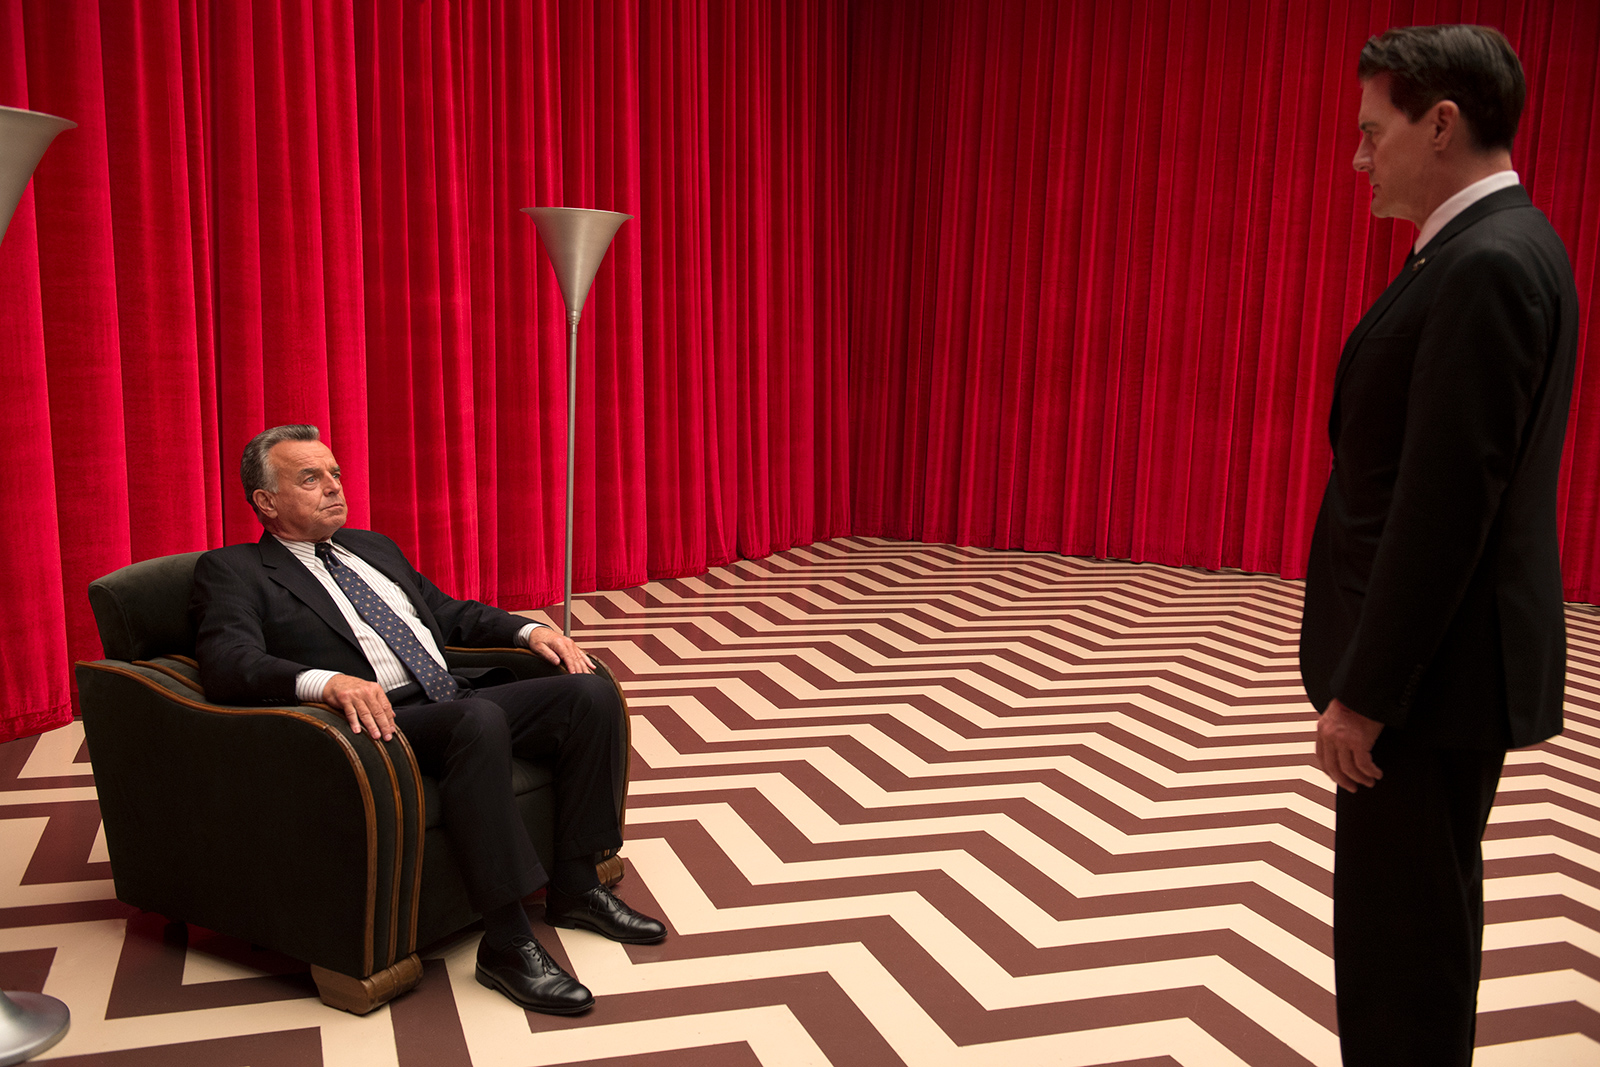 Twin Peaks Red Room set design